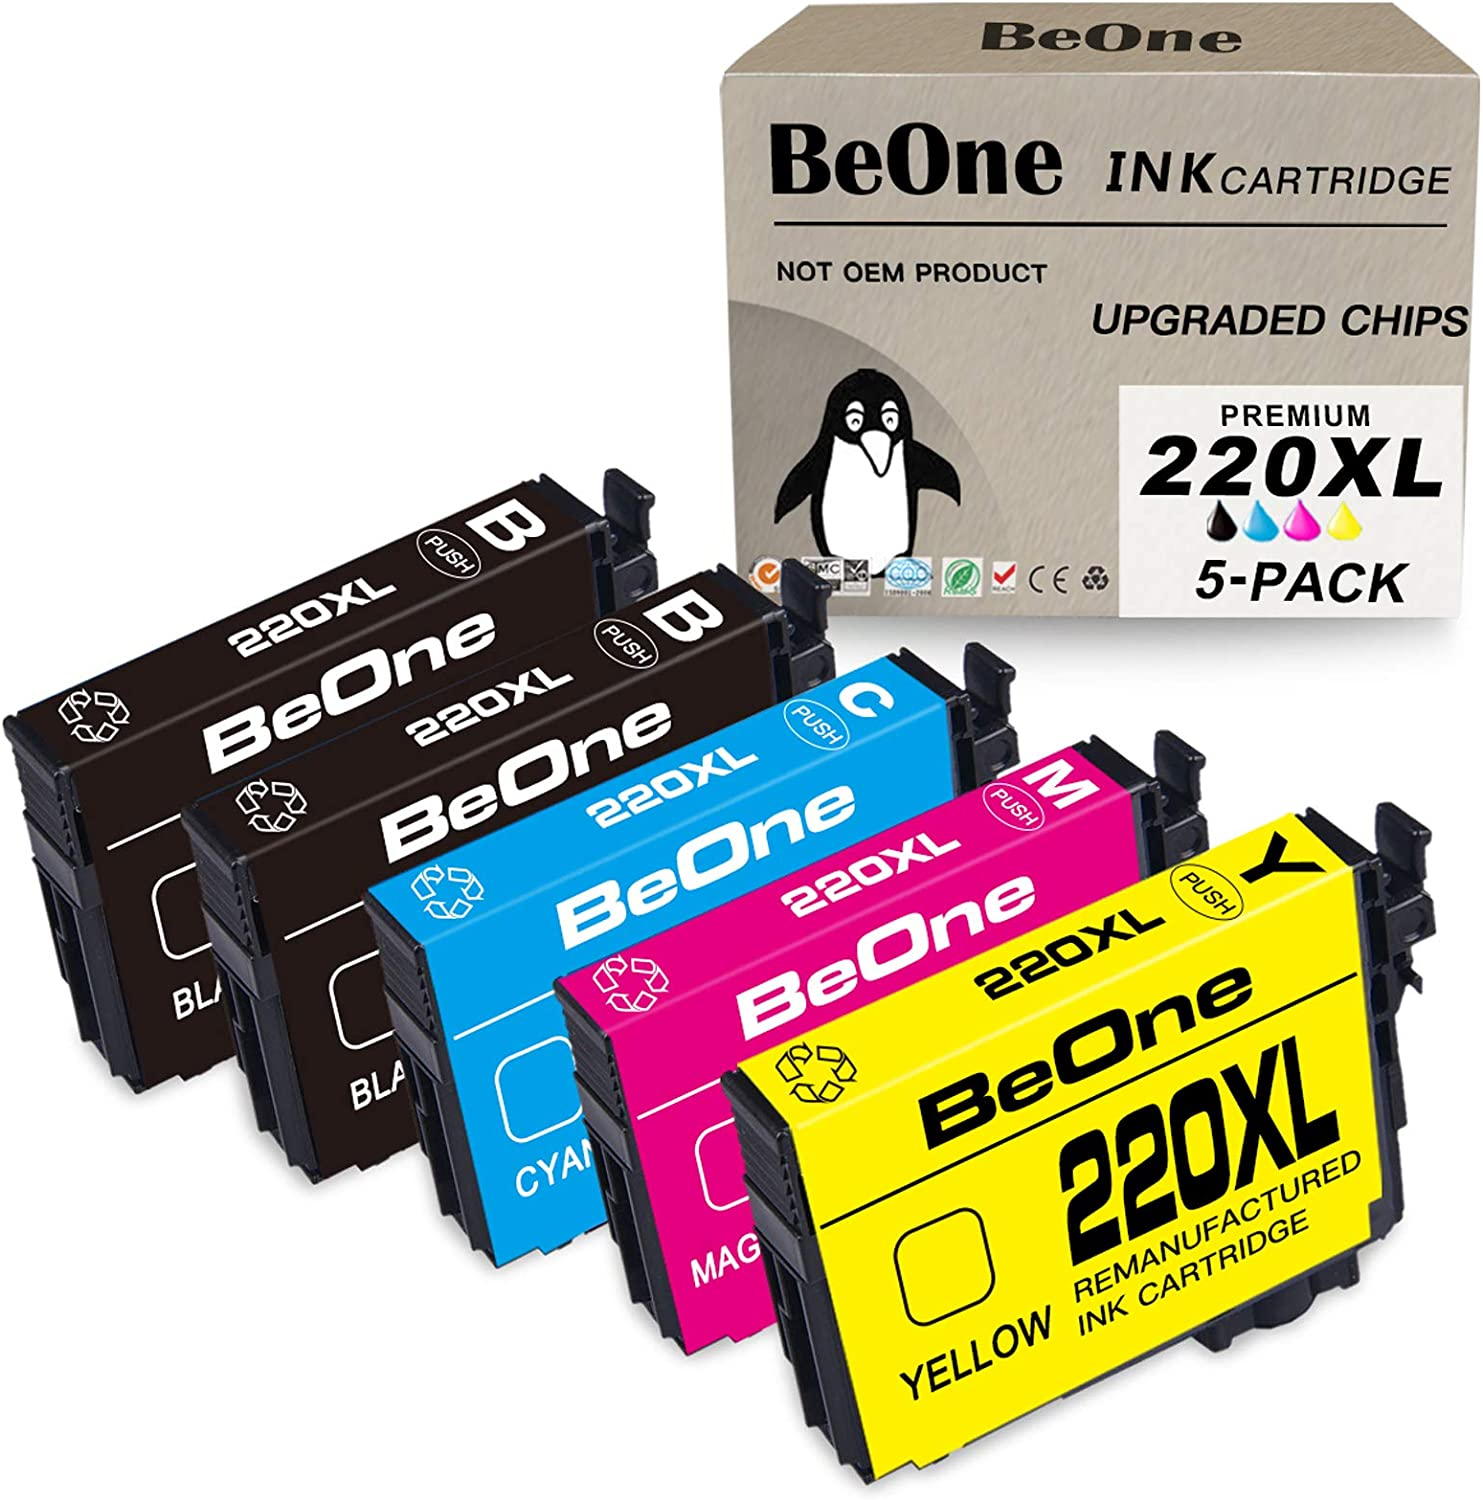 BeOne Remanufactured Ink Cartridge Replacement for Epson 220 XL 220XL T220 T220XL 5-Pack to Use with Workforce WF-2750 WF-2630 WF-2650 WF-2760 WF-2660 Expression XP-420 XP-320 XP-424 (2BK 1C 1M 1Y)